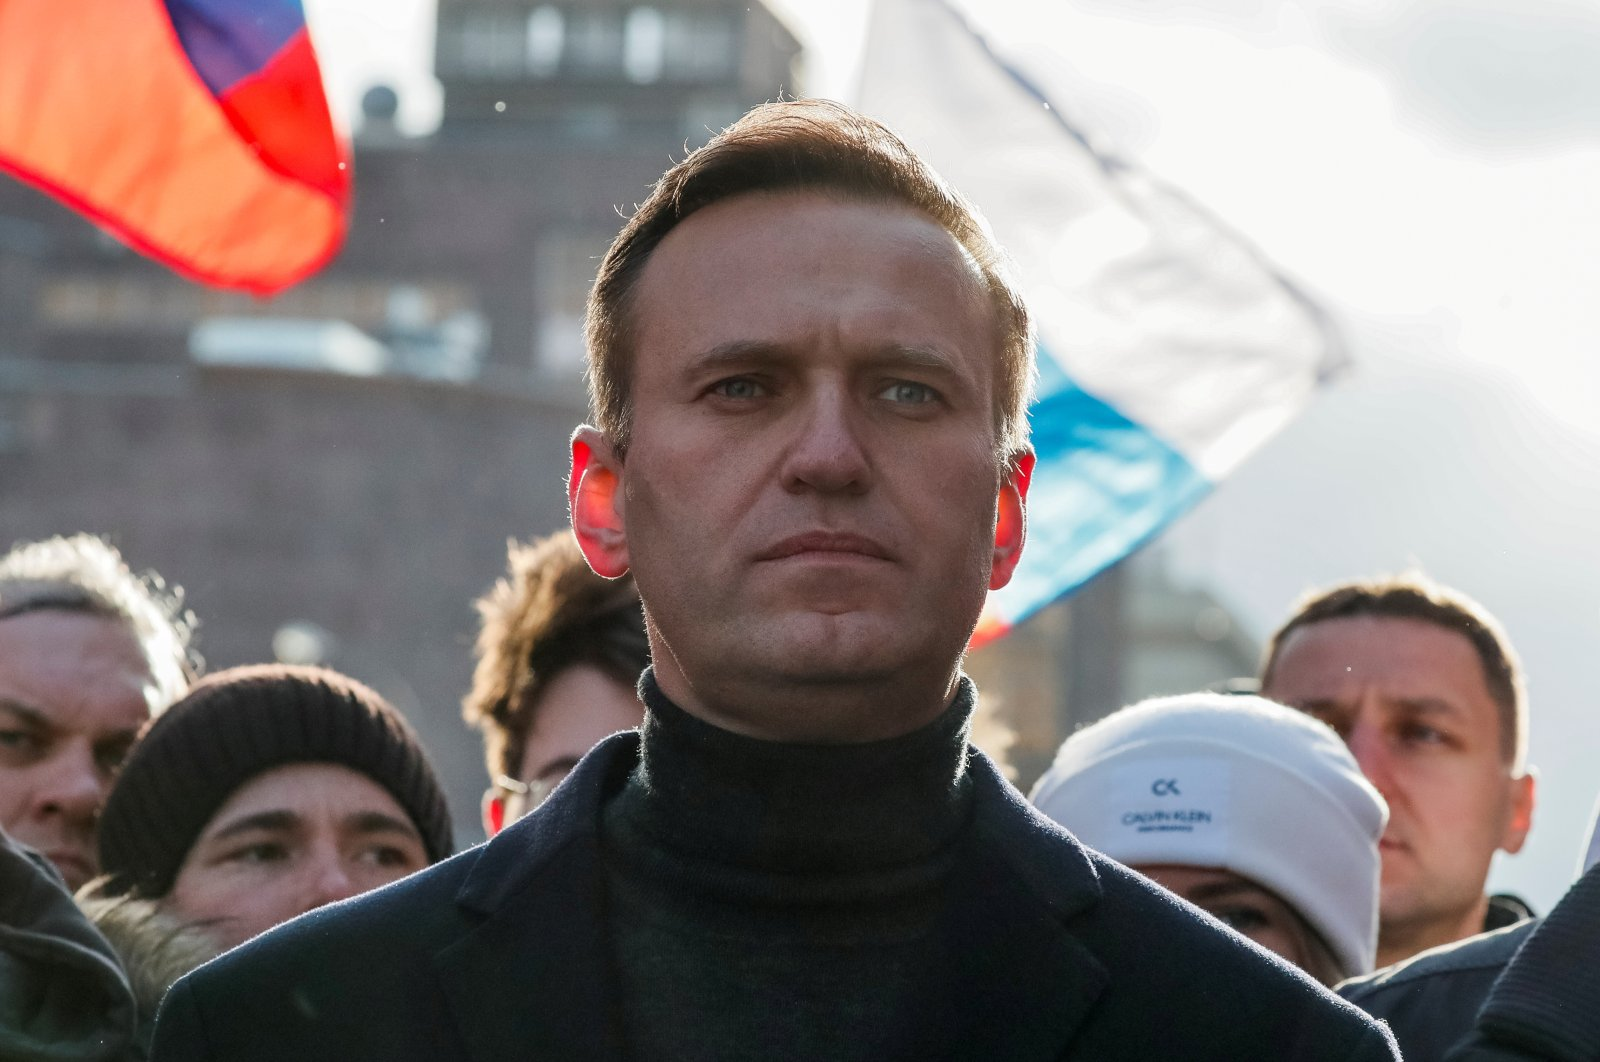 Russian opposition politician Alexei Navalny takes part in a rally to mark the fifth anniversary of opposition politician Boris Nemtsov's murder and to protest proposed amendments to the country's constitution, Moscow, Russia, Feb. 29, 2020. (Reuters Photo)